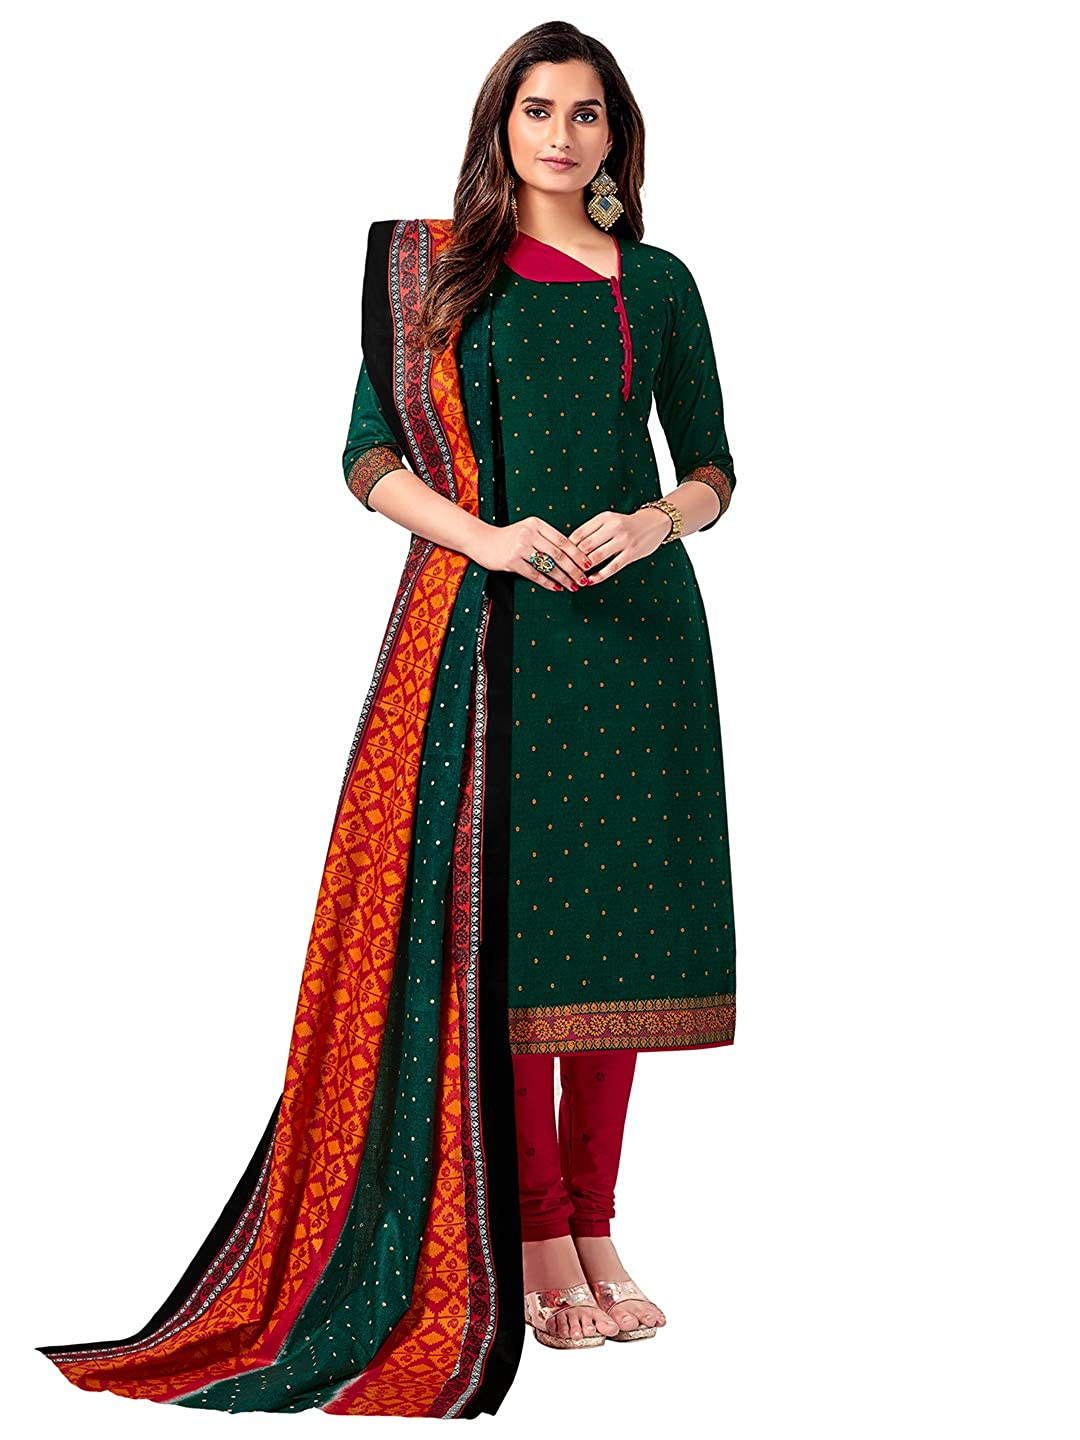 kurta for civil services and upsc